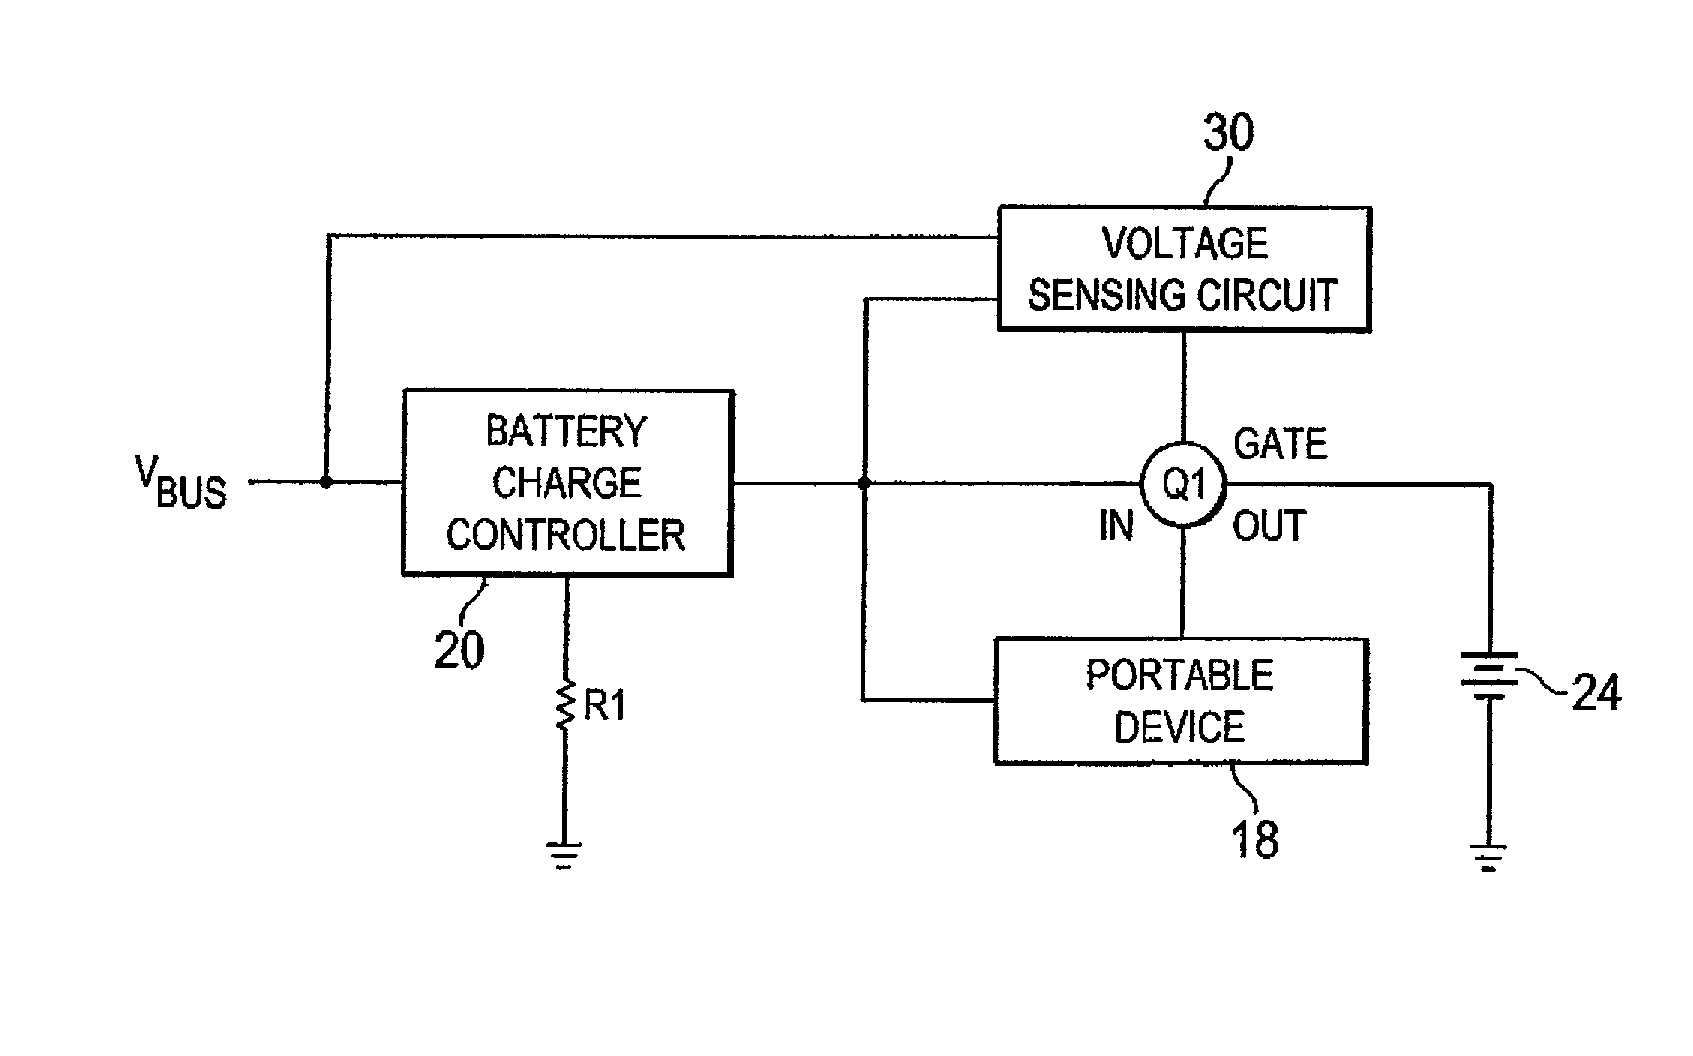 Patent Us 7791319 B2 Charge Controller Schematic First Claim